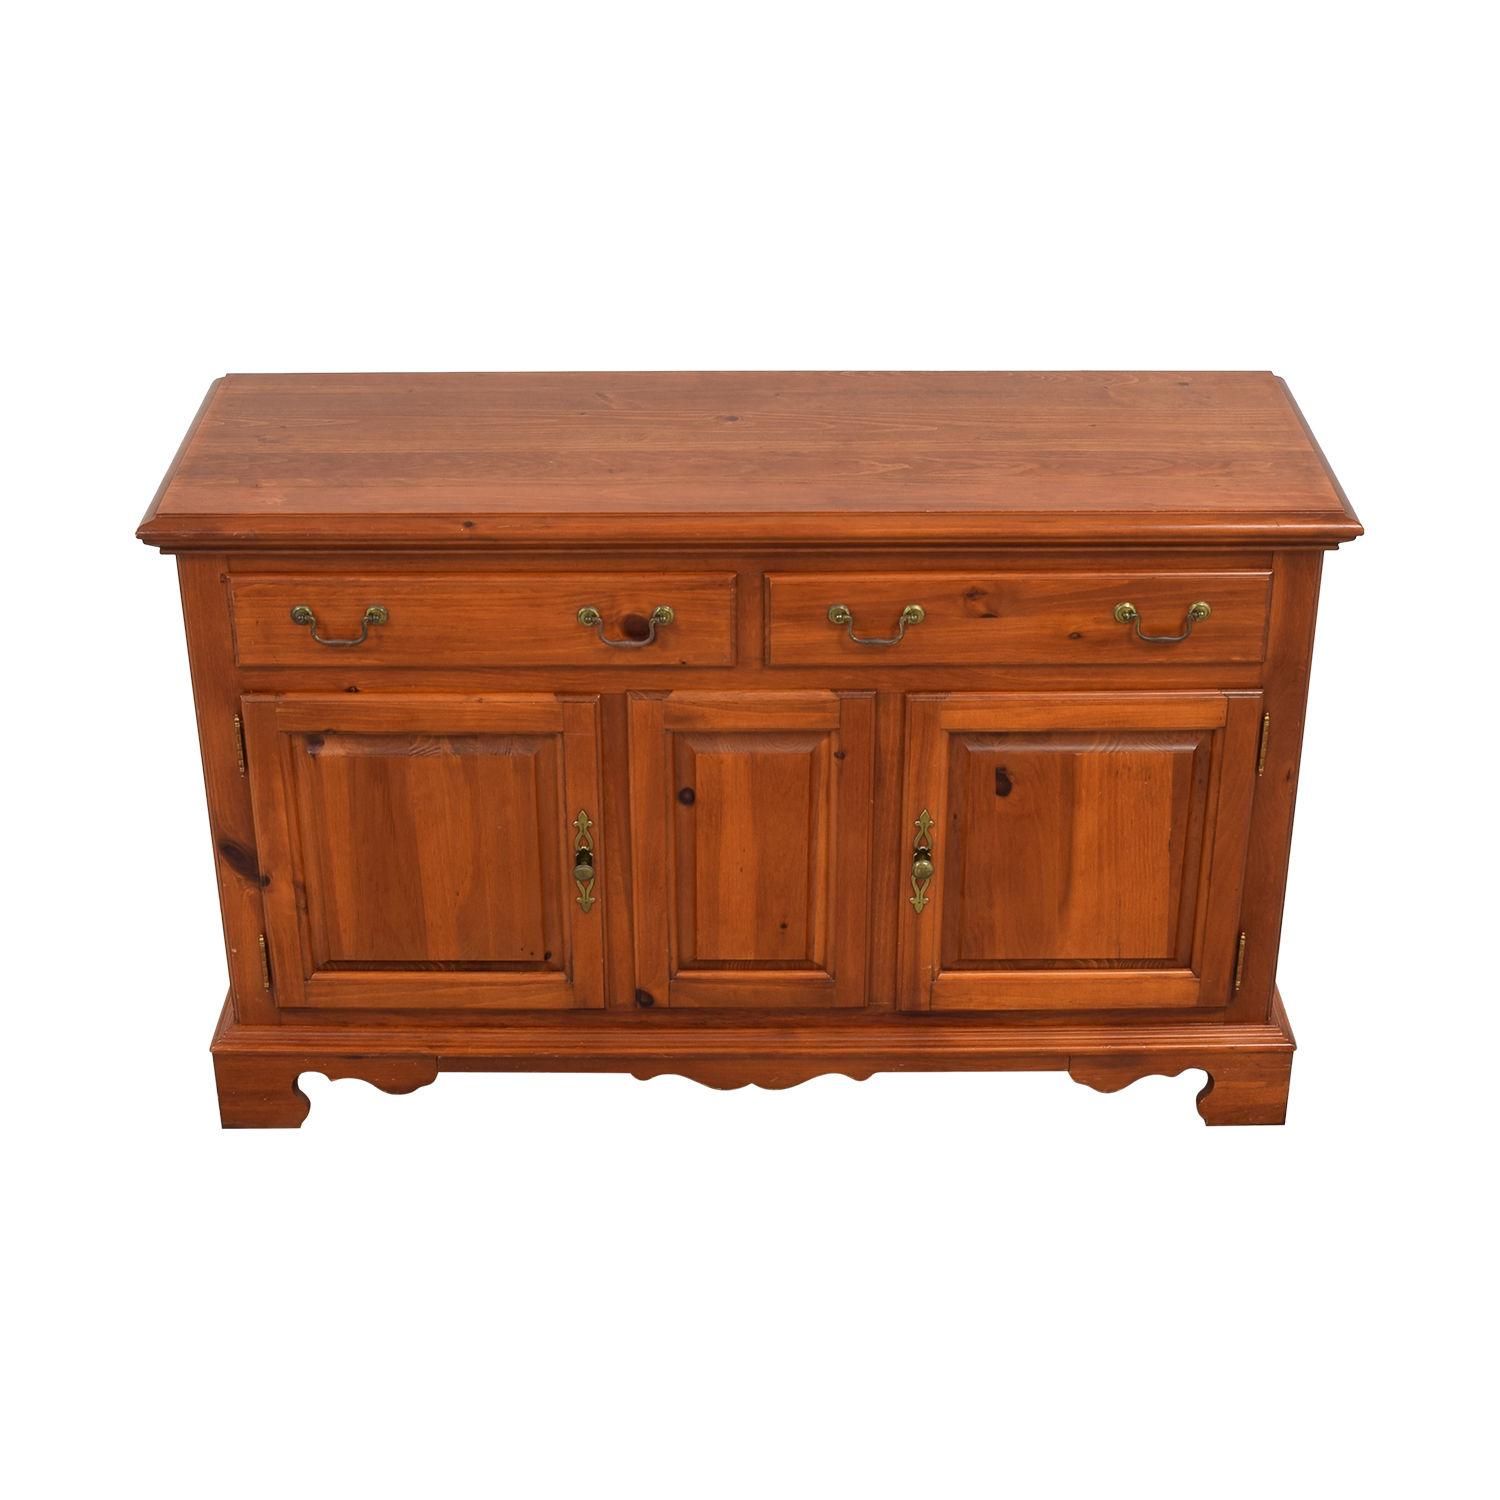 Broyhill Furniture Broyhill Serving Sideboard price